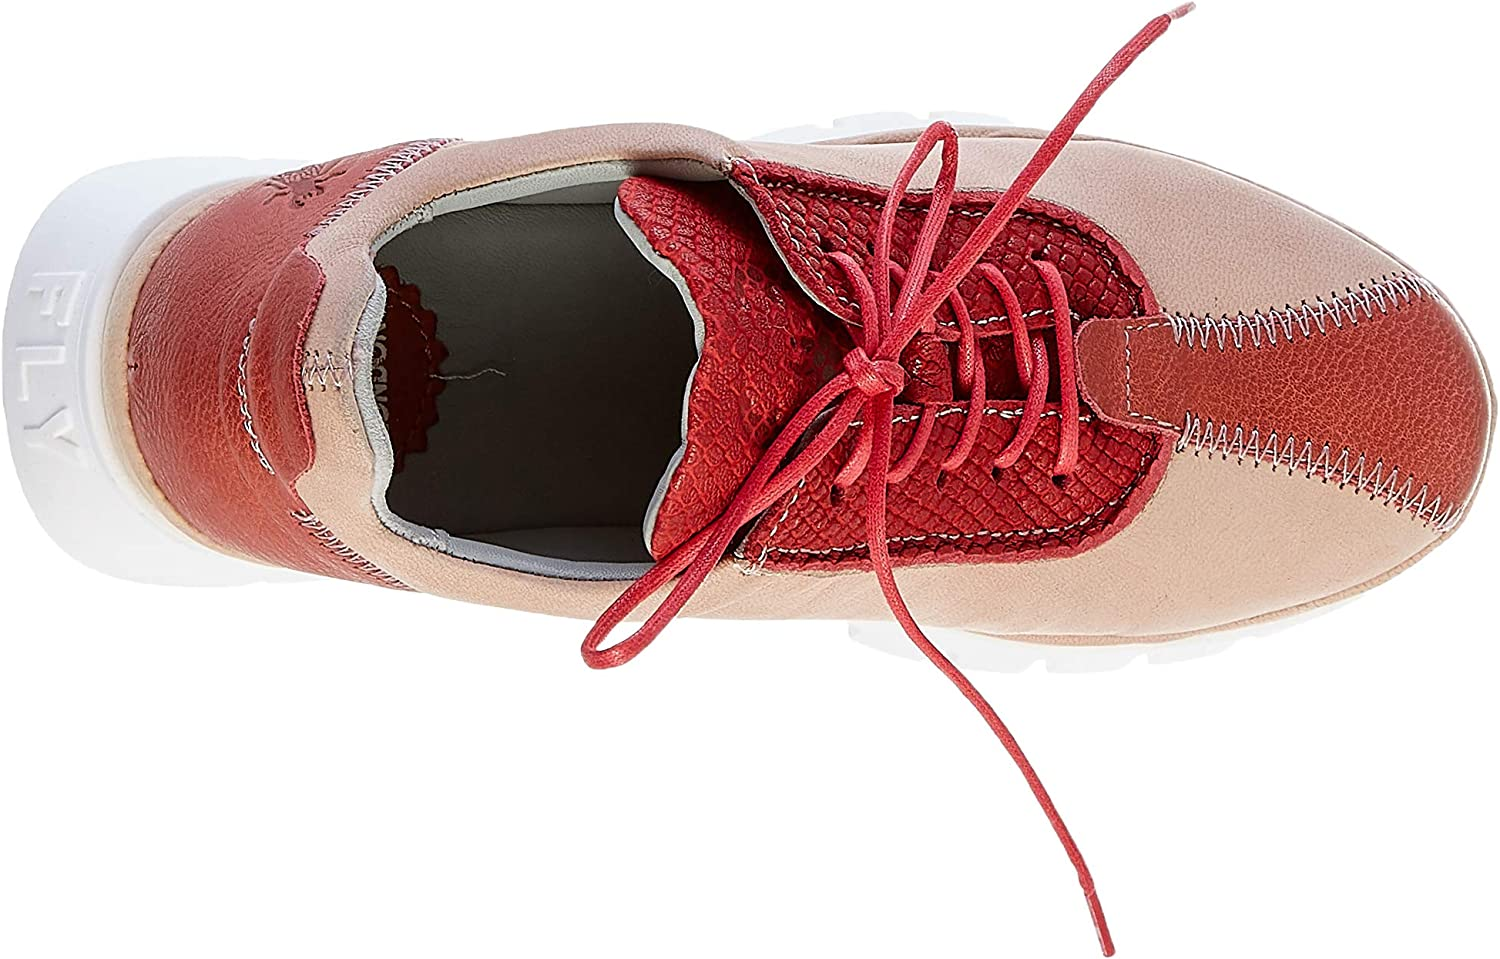 FLY London Women's Low-Top Trainers Red Red Nude Pink 004